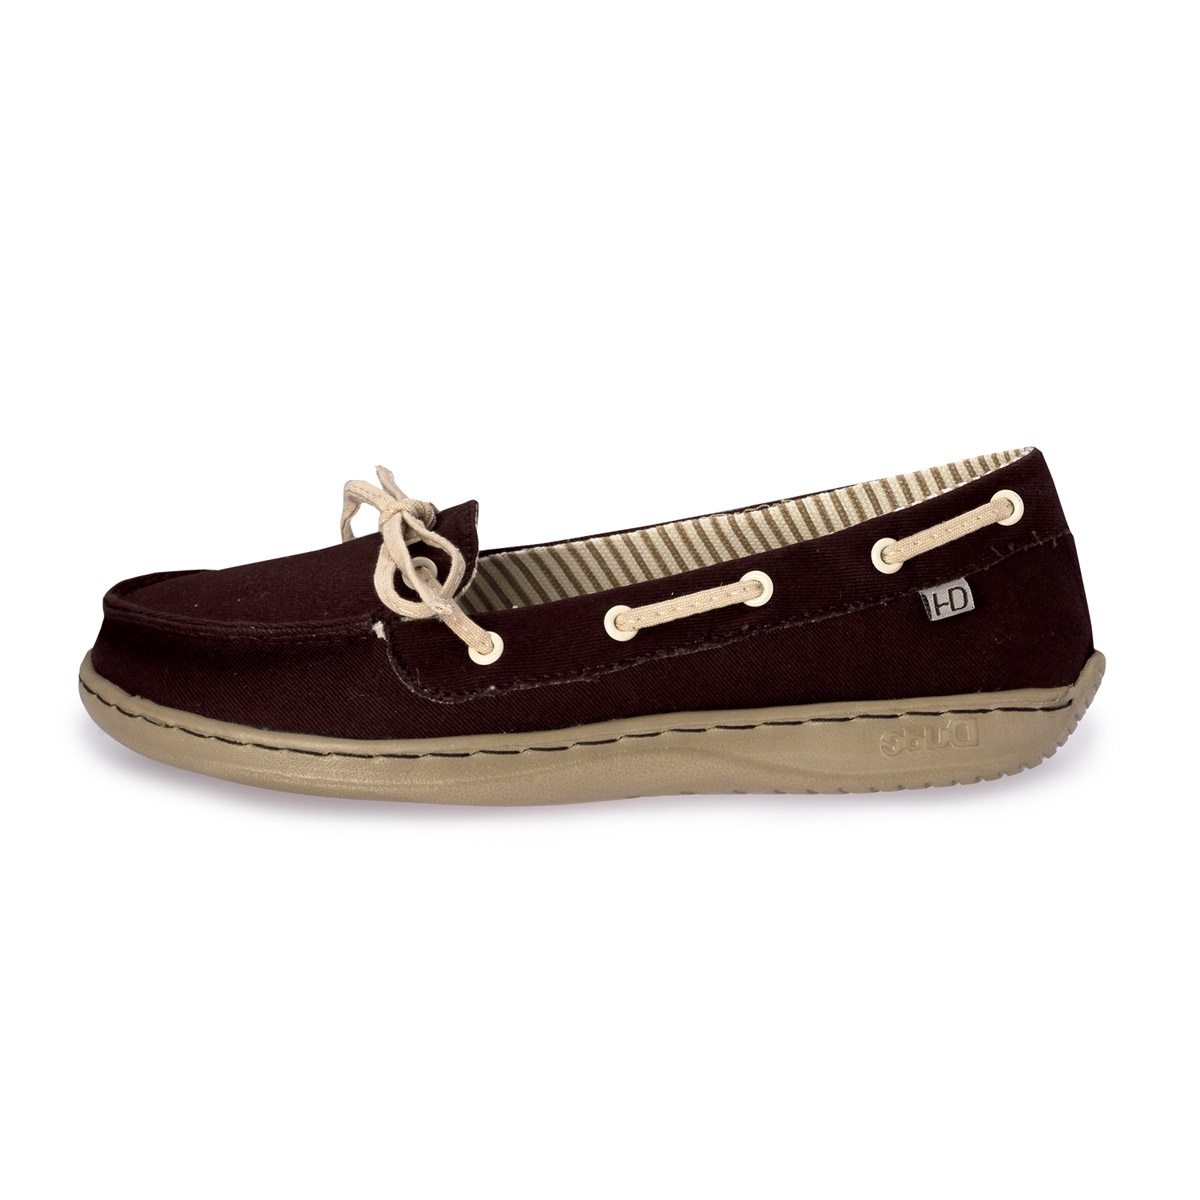 canvas lace up boat style shoe. 9 View All Crocs; 9